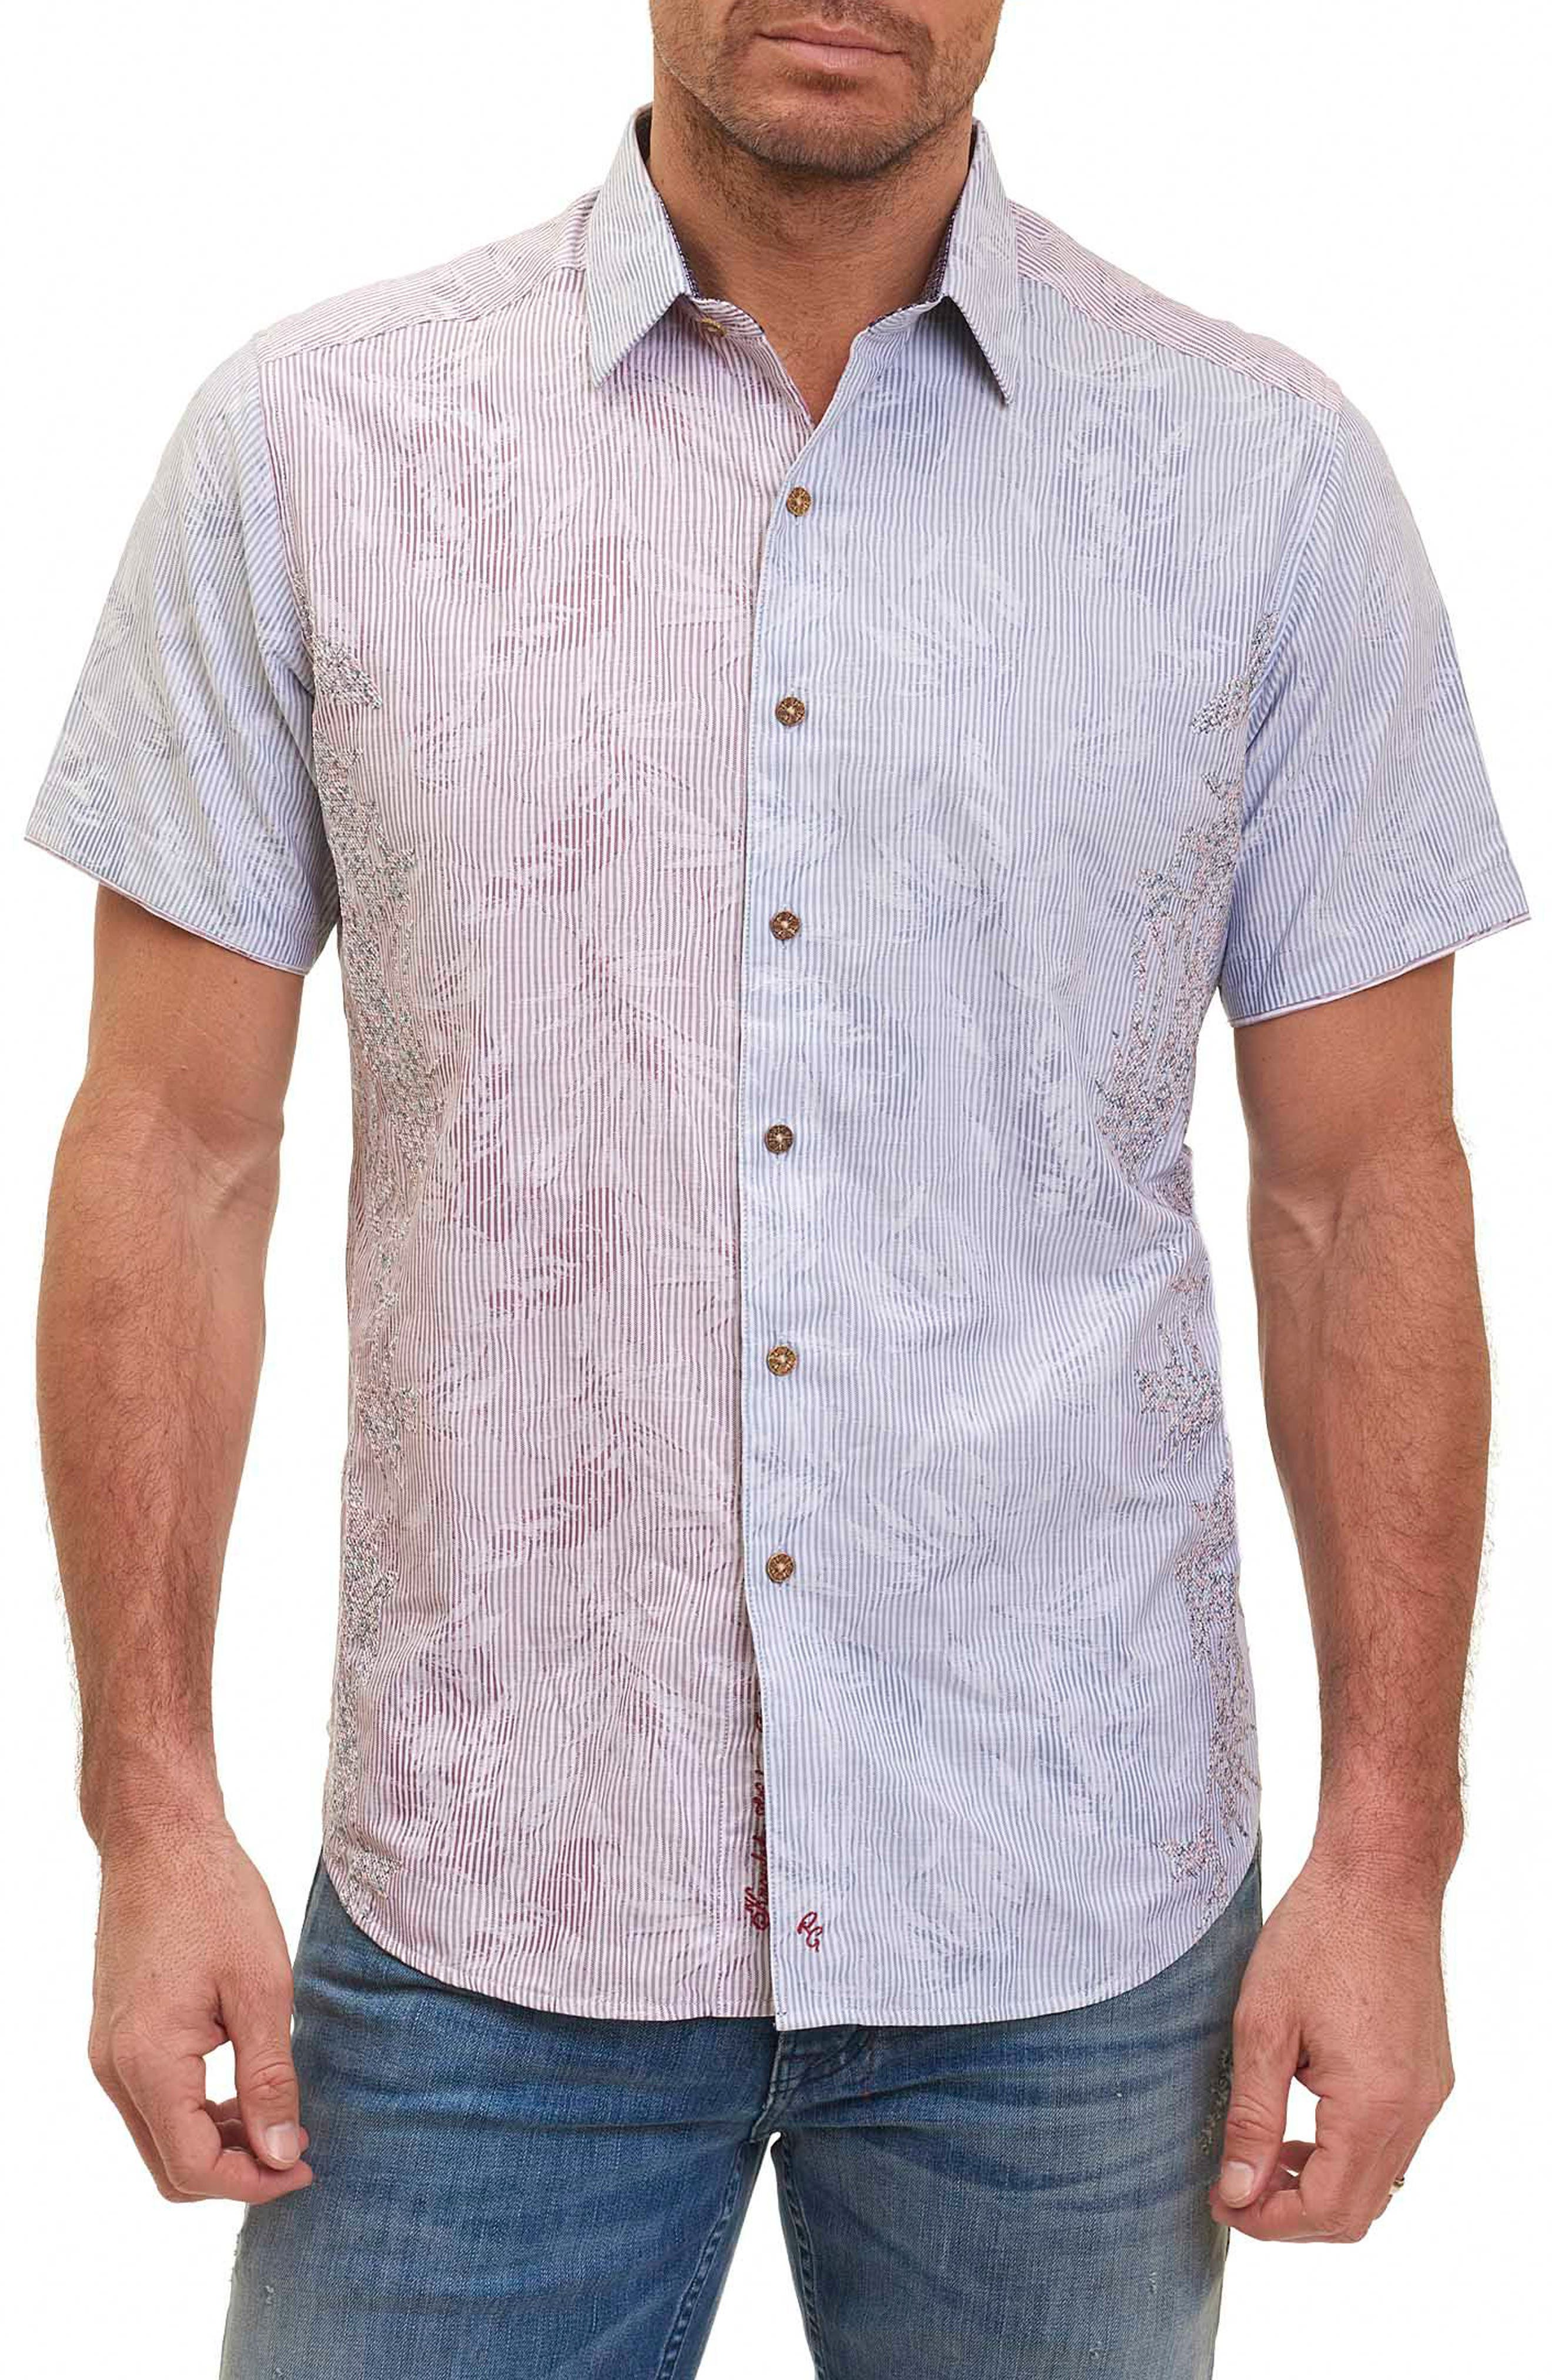 Main Image - Robert Graham Bundy Boulevard Classic Fit Print Sport Shirt (Limited Edition)